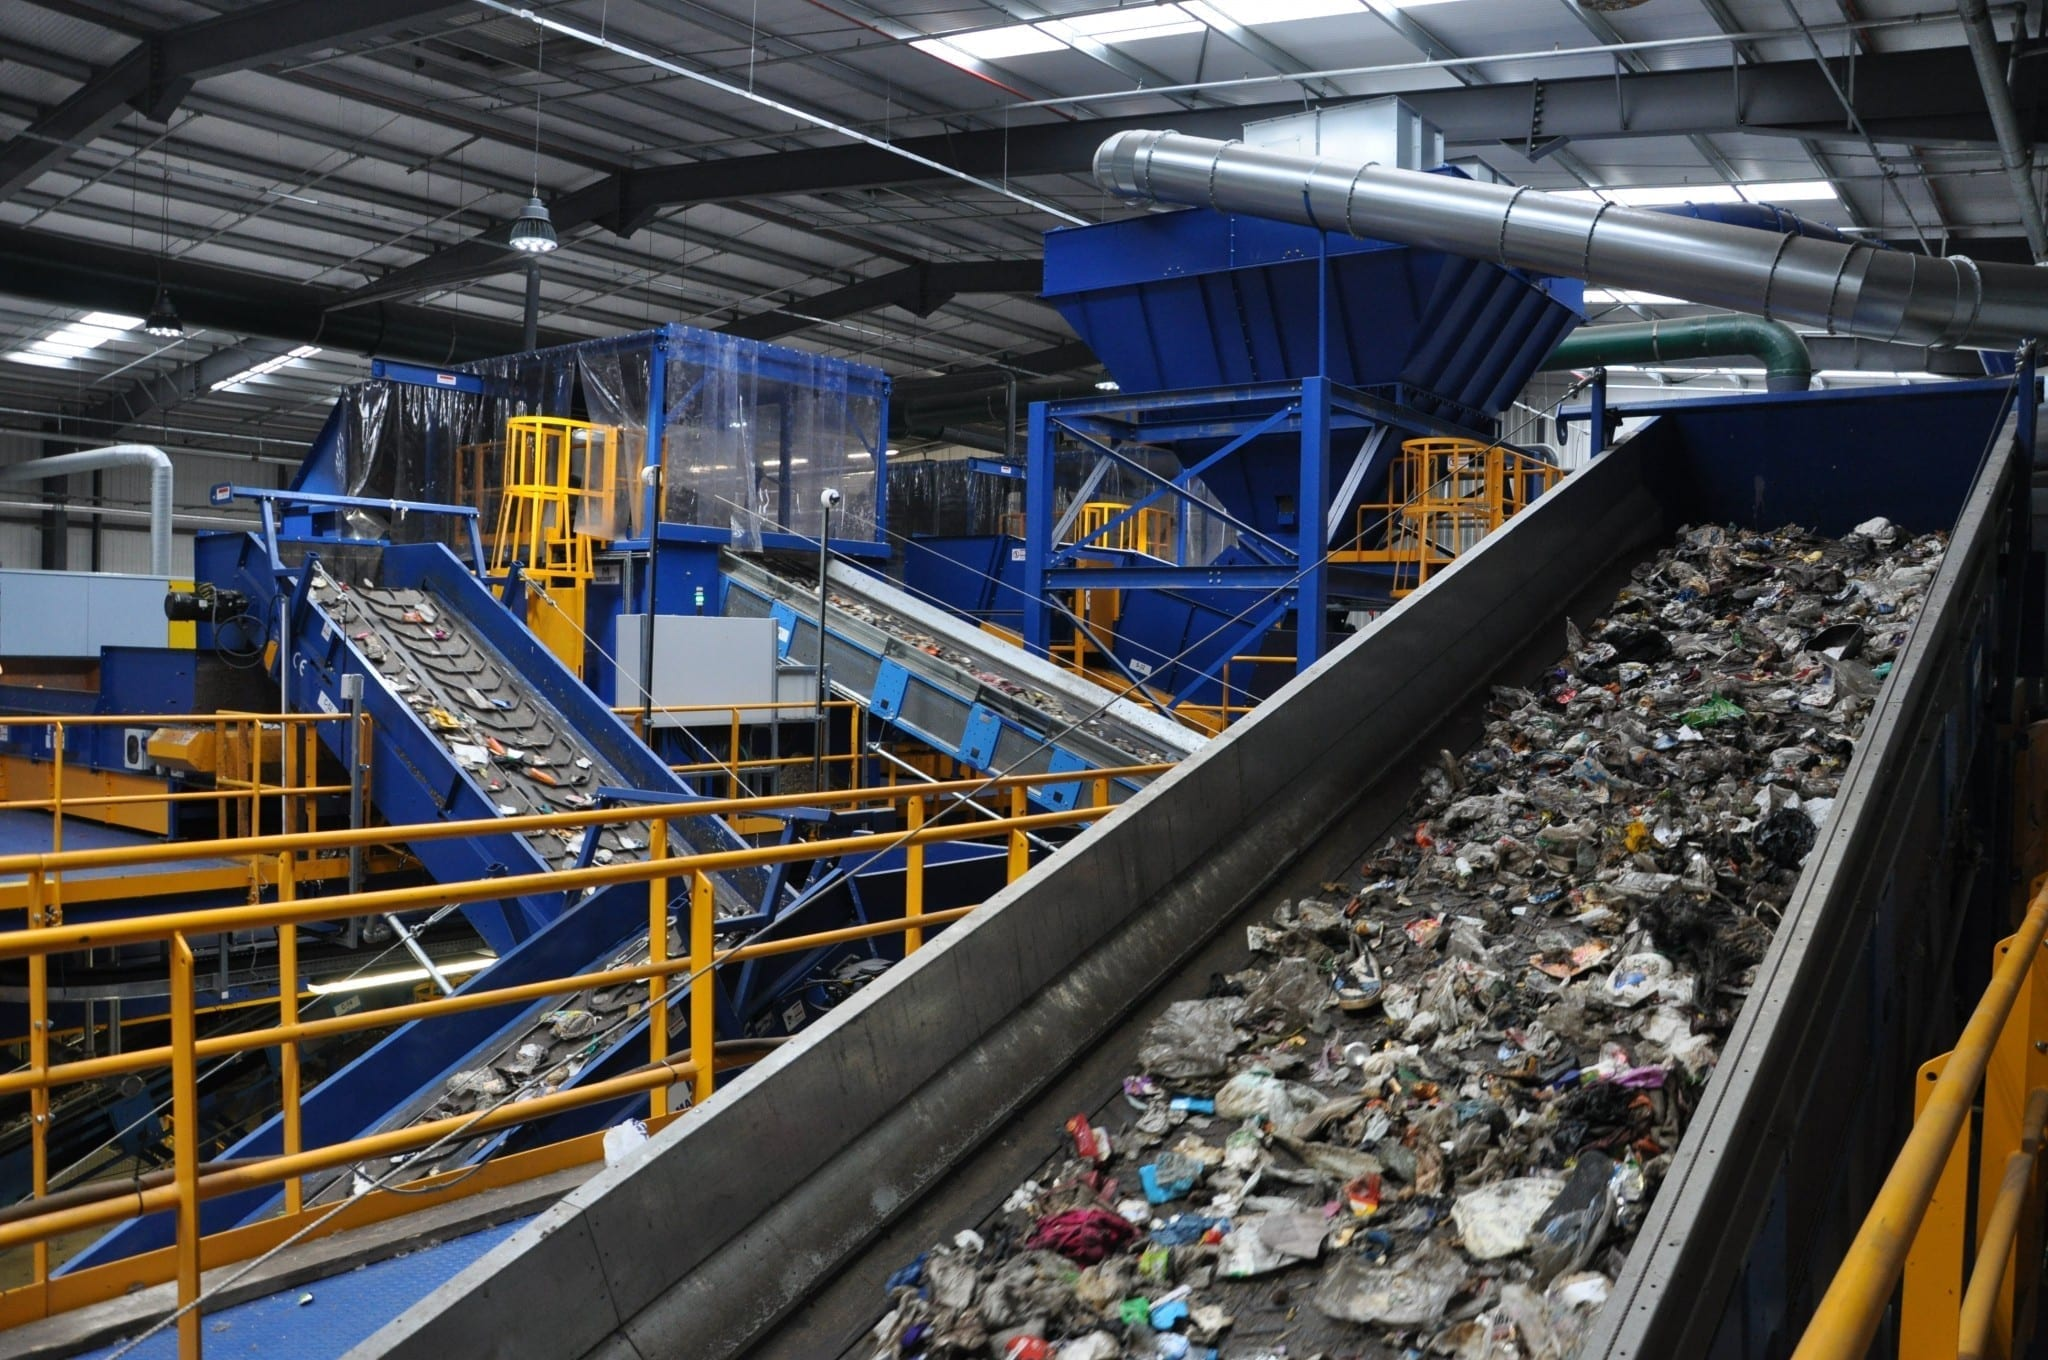 Mixed waste processing equipment